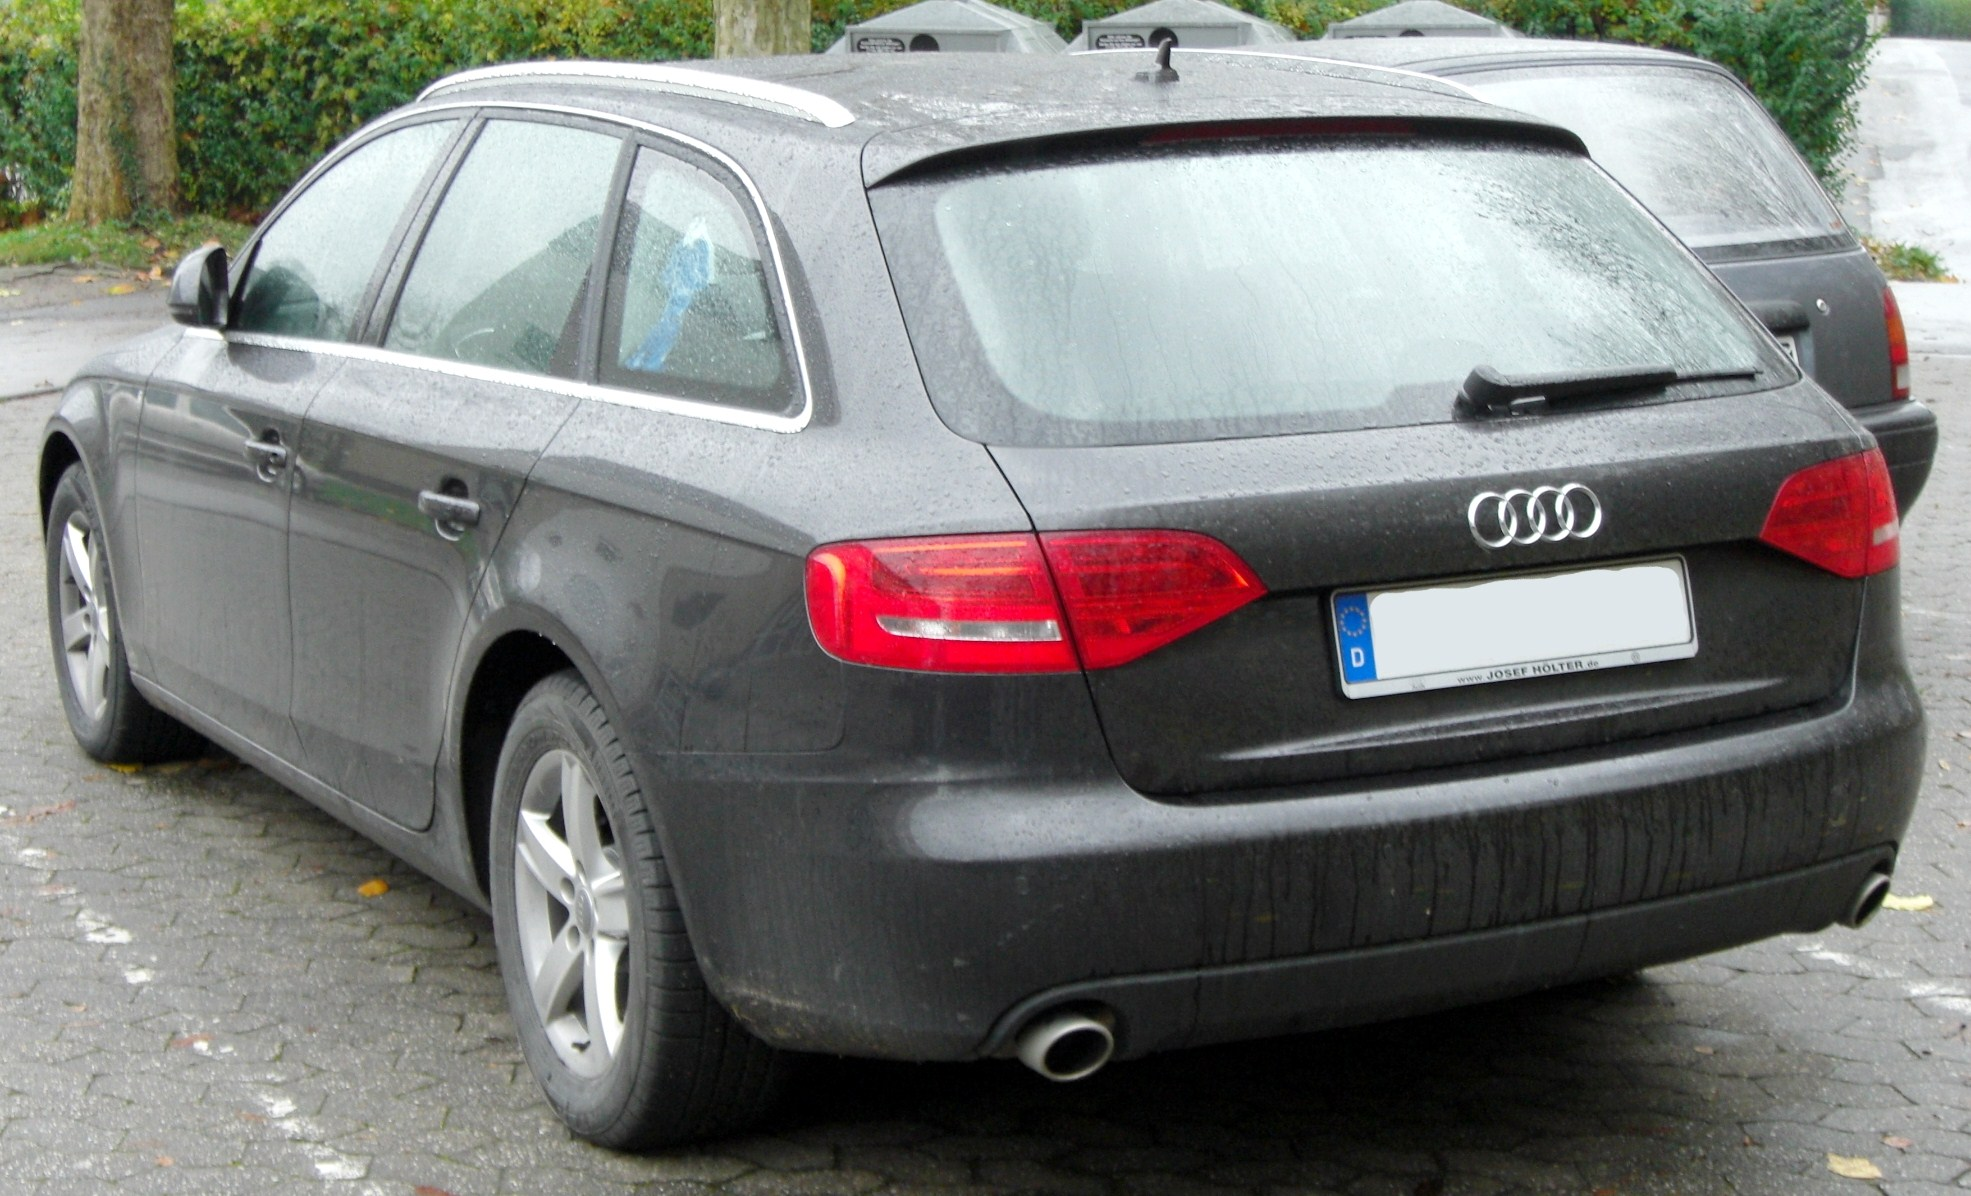 file audi a4 b8 avant seit 2008 rear wikimedia. Black Bedroom Furniture Sets. Home Design Ideas